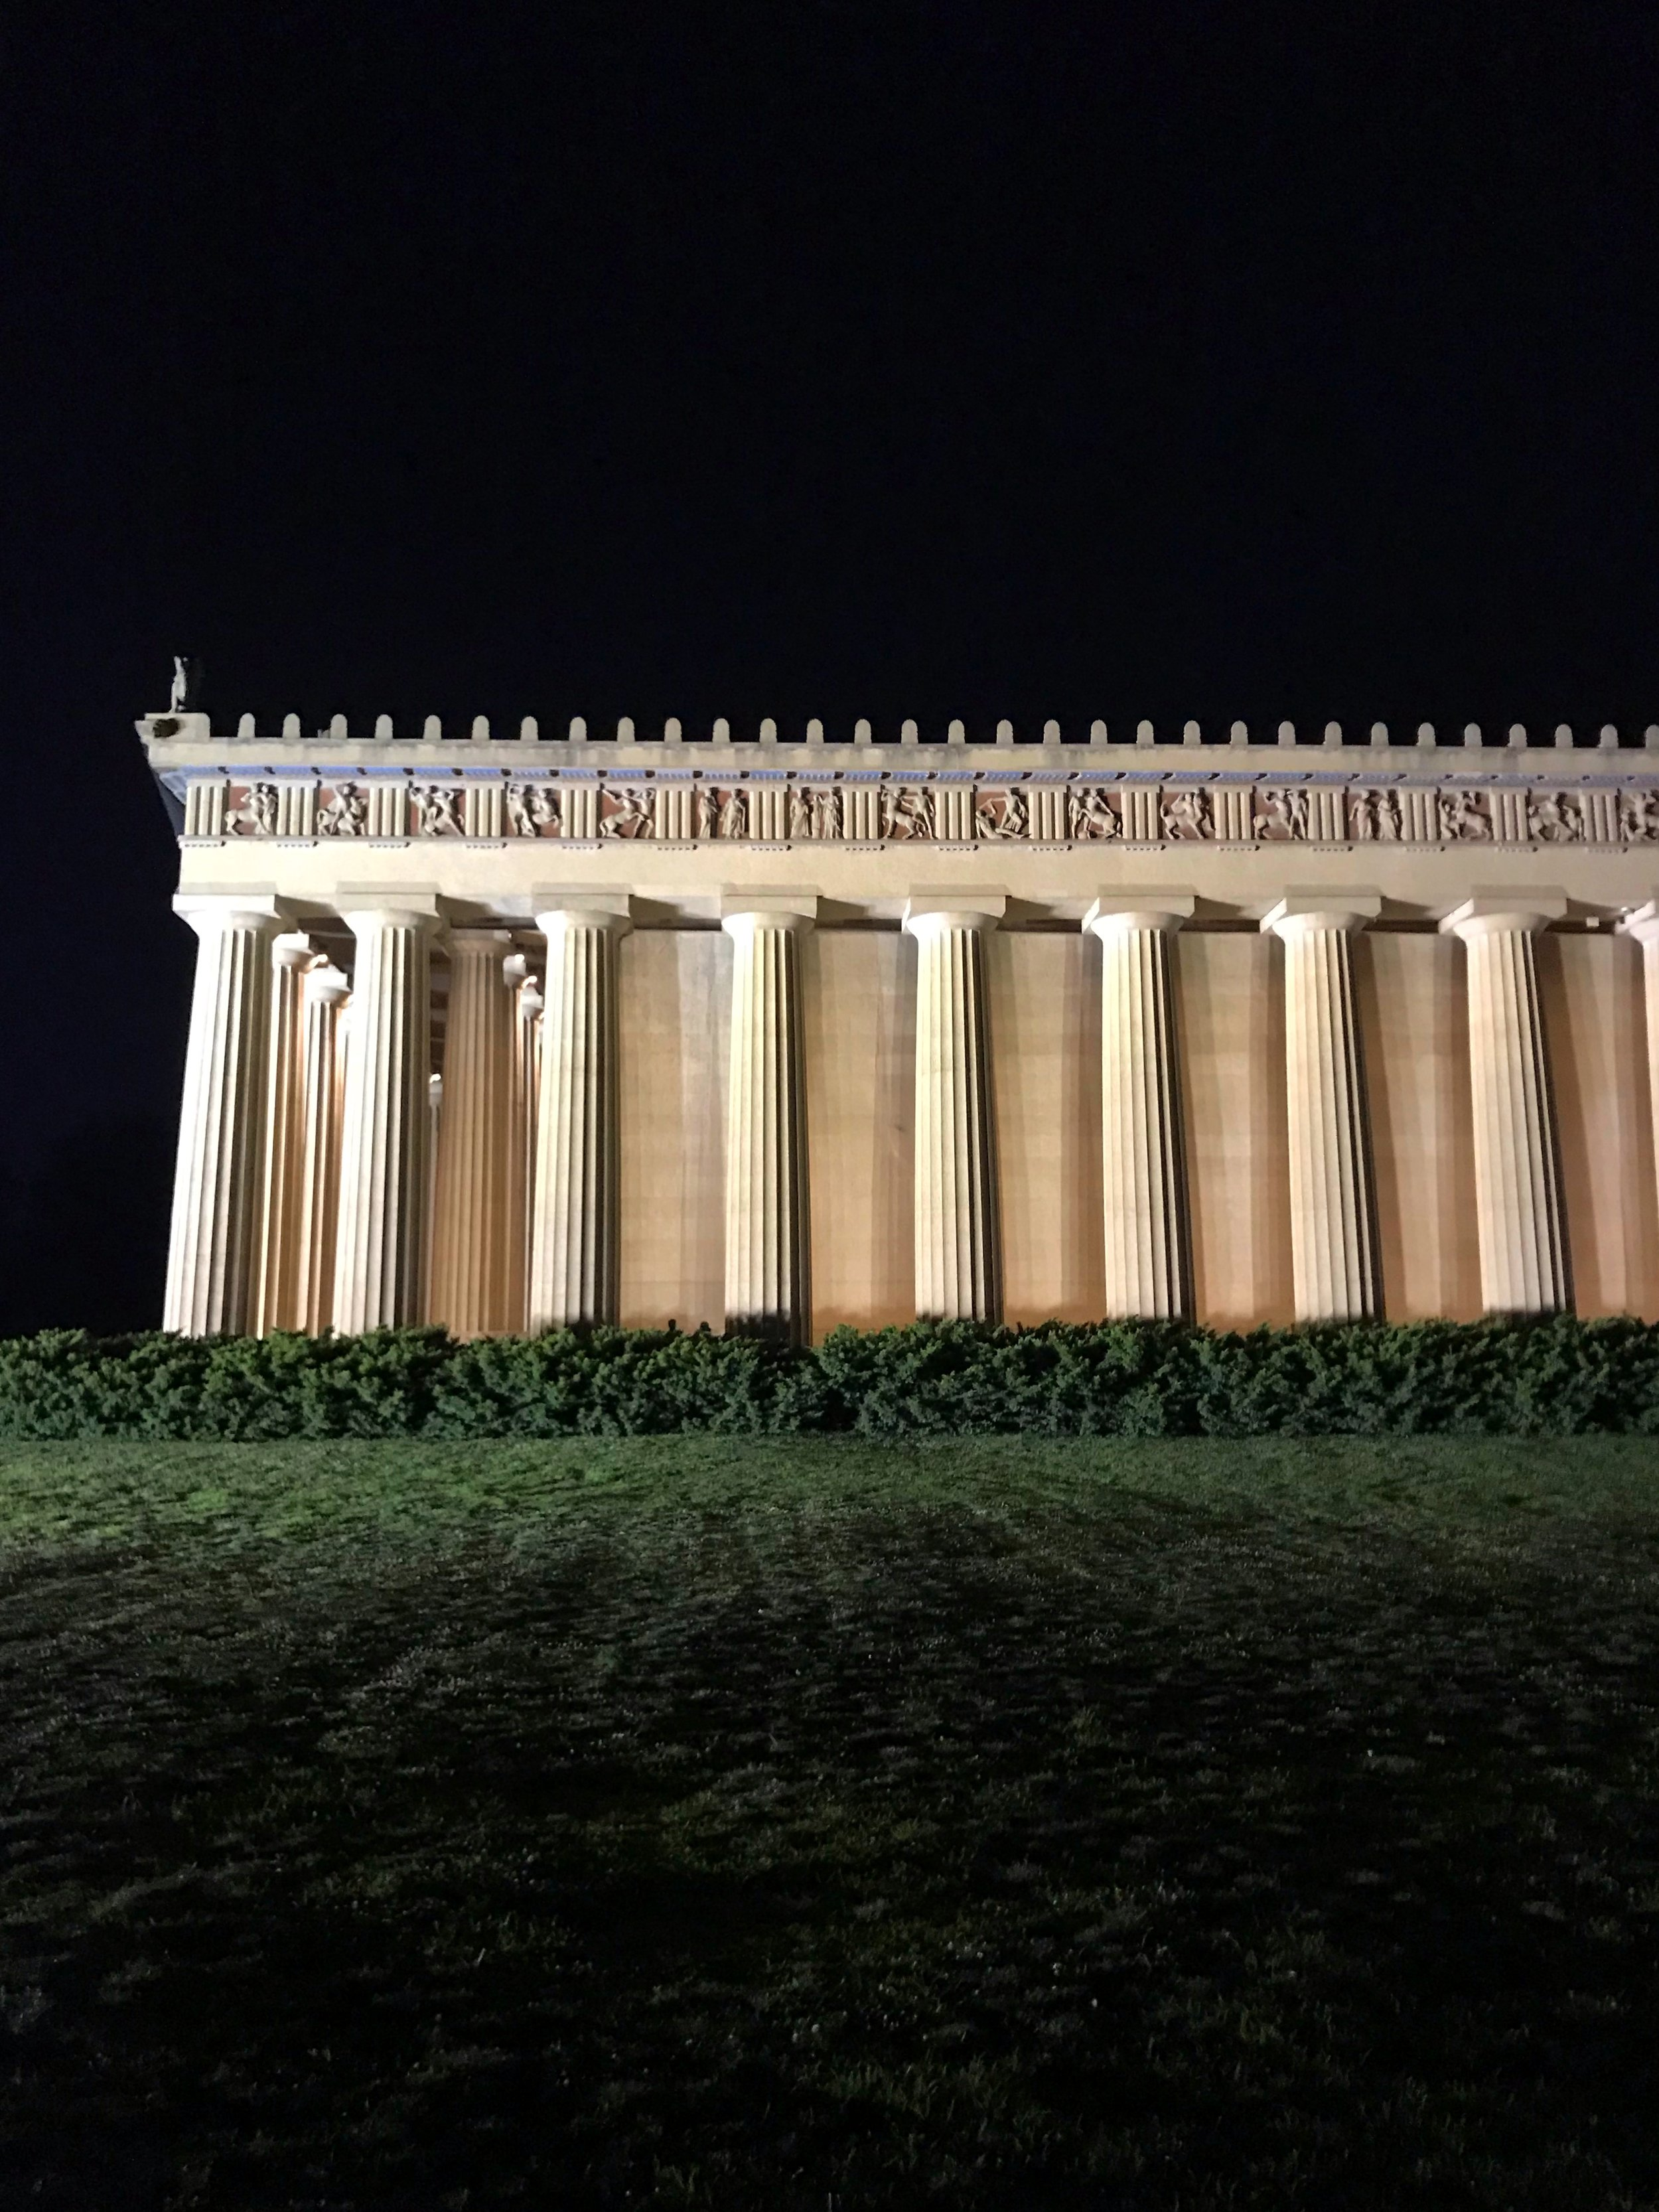 All things end at Nashville's Parthenon.